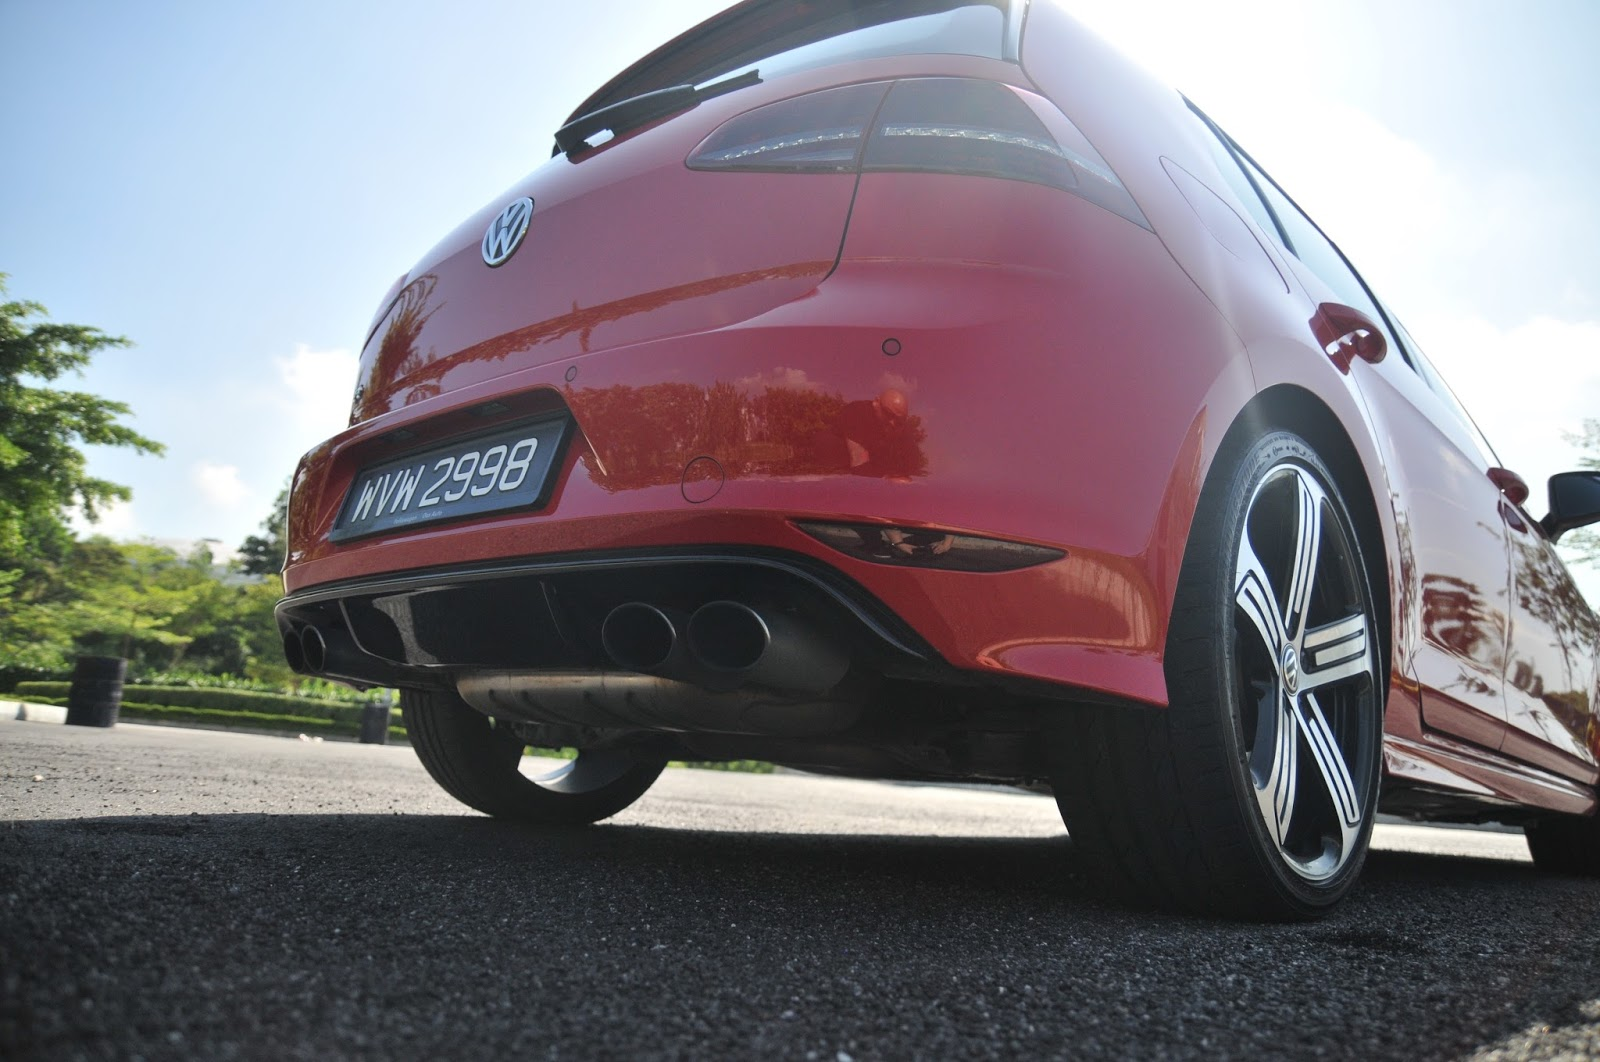 Walauwei com!: Volkswagen Golf R compared to the Golf GTI